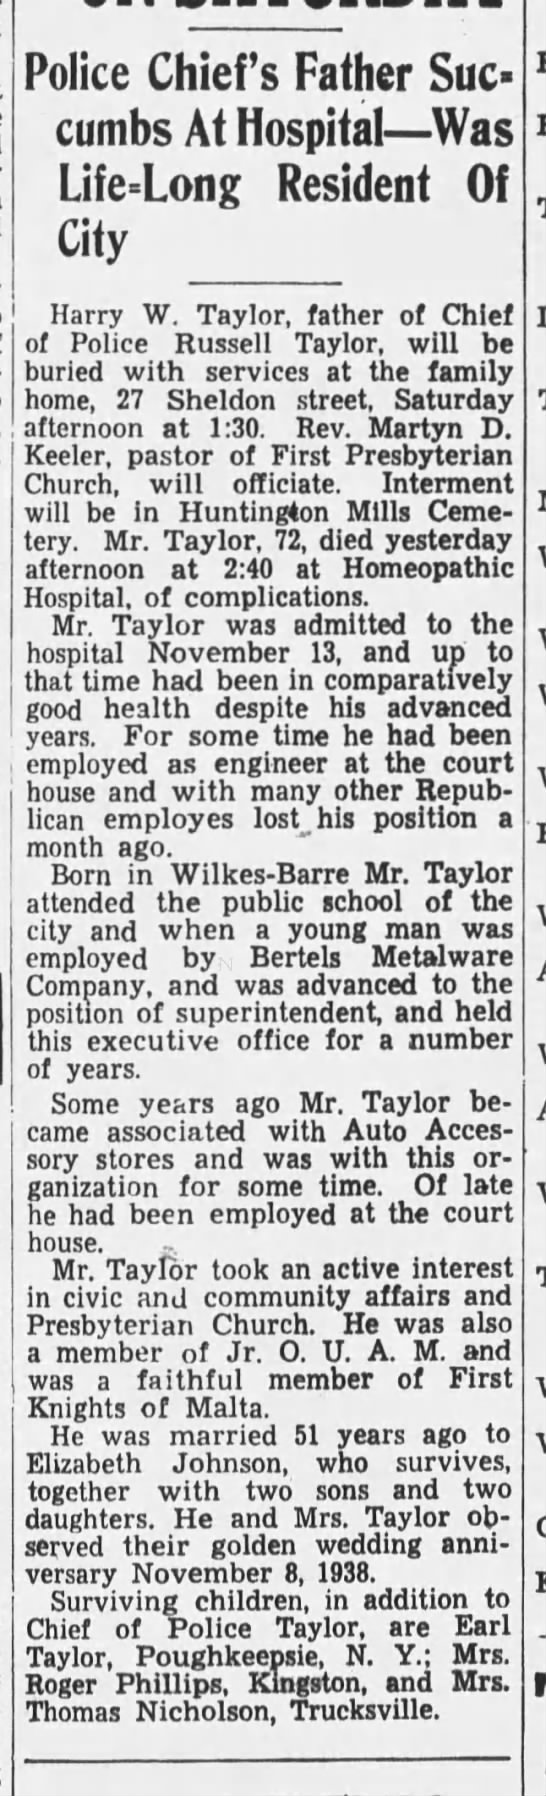 Harry W Taylor Died The Wilkes-Barre Record (Wilkes-Barre) 11-23-1939